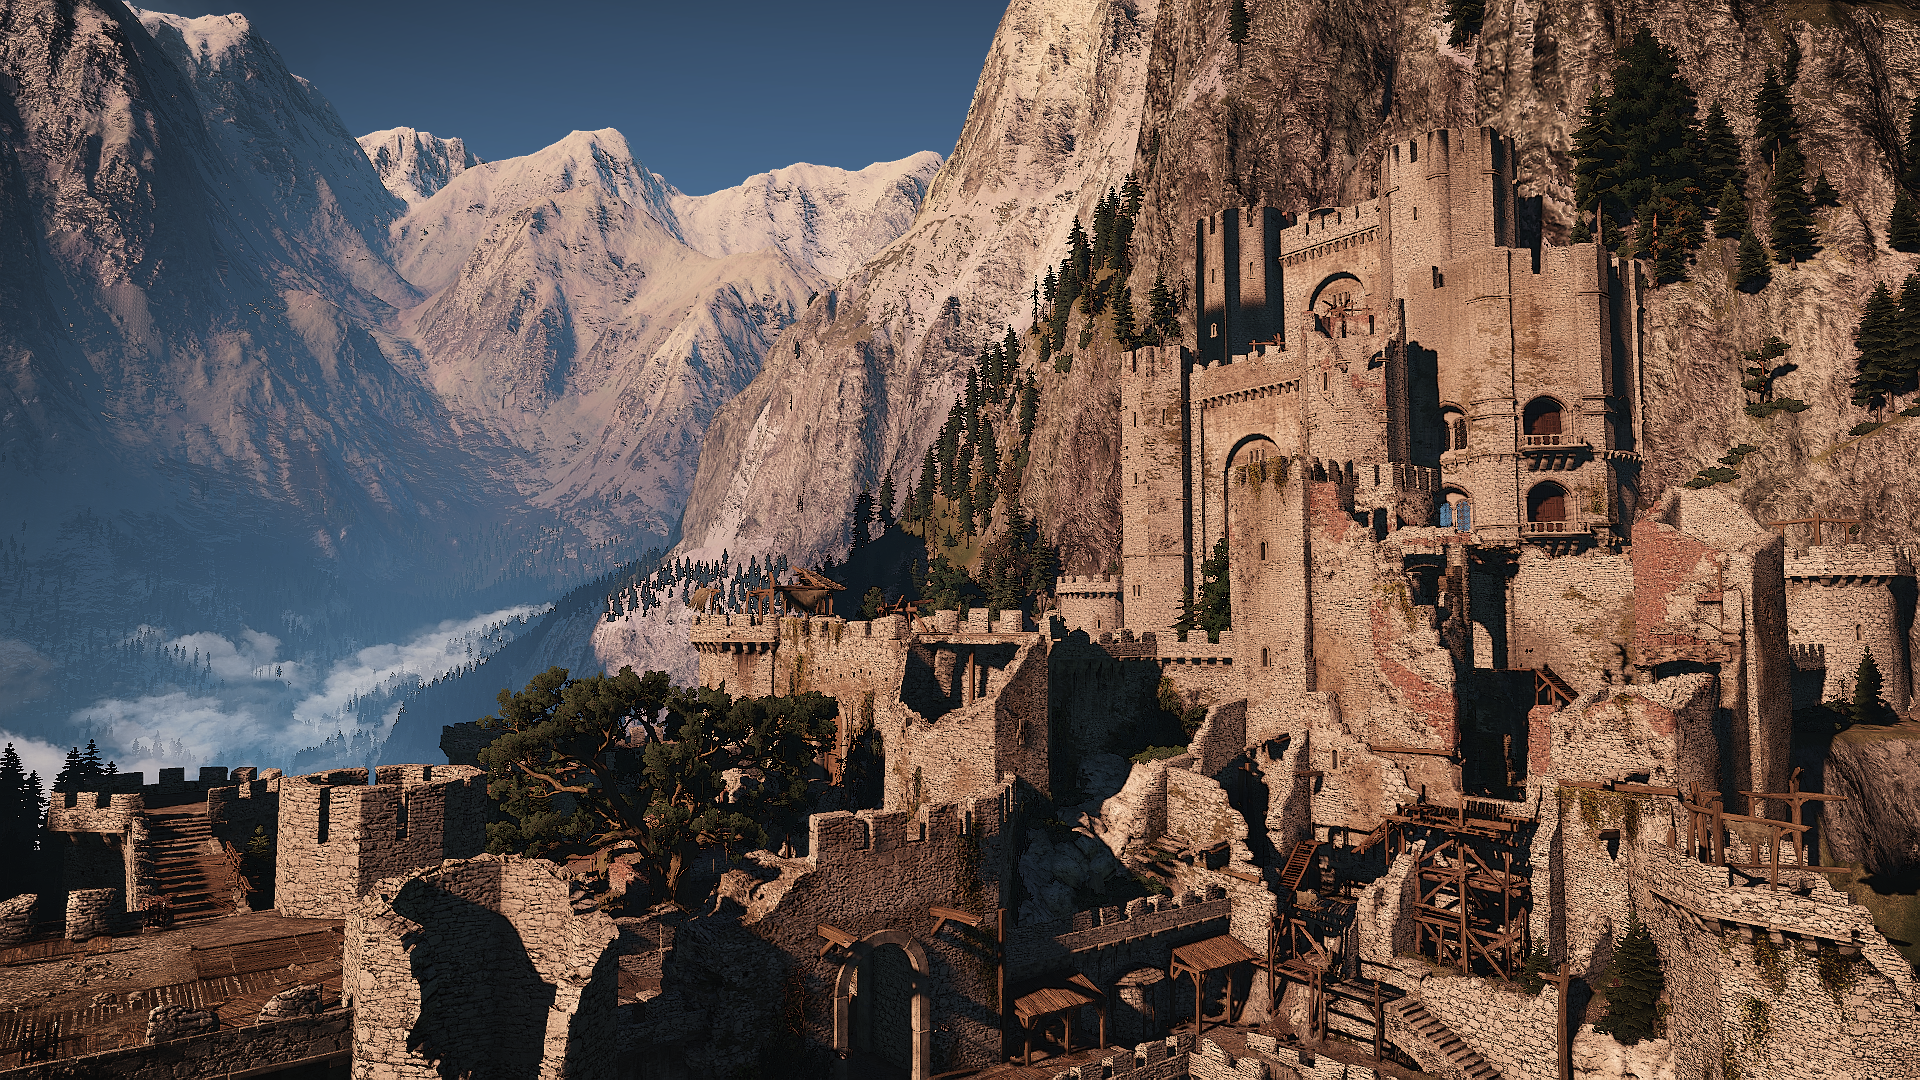 11609 Kaer Morhen images and pictures 2019 1920x1080